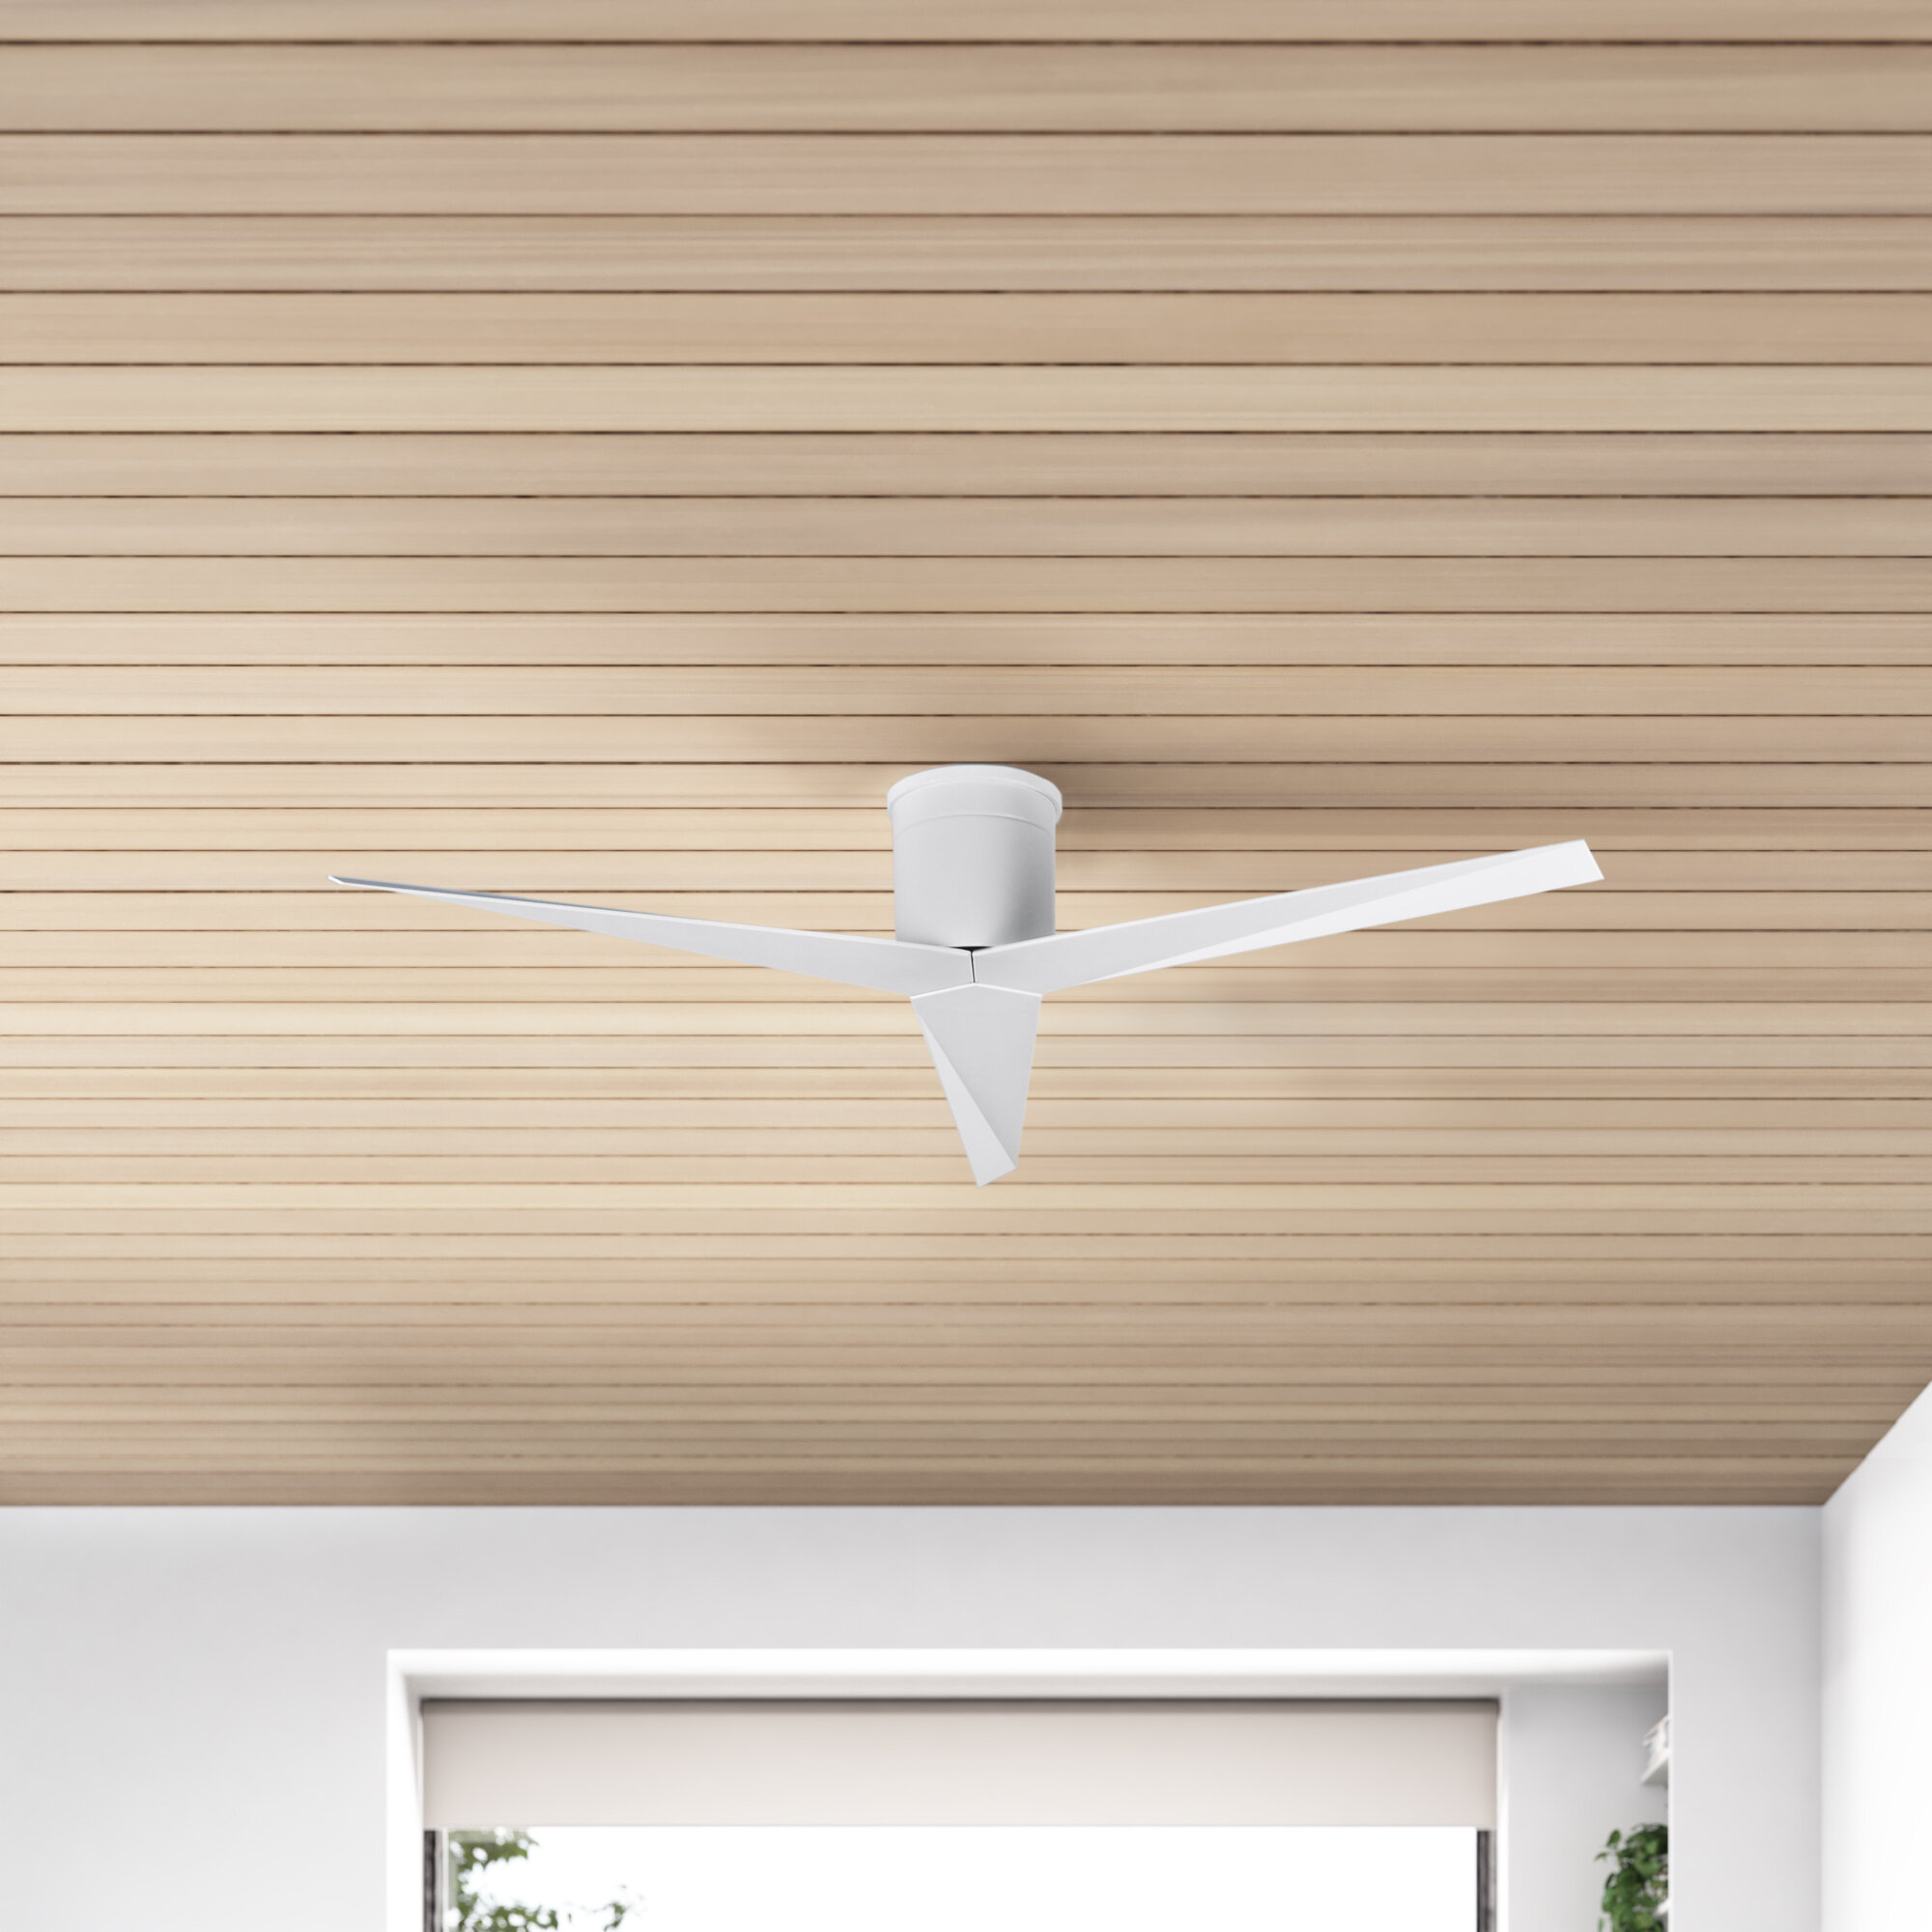 Hedin 56 3 Blade Propeller Ceiling Fan With Remote Control And Wall Control Reviews Allmodern